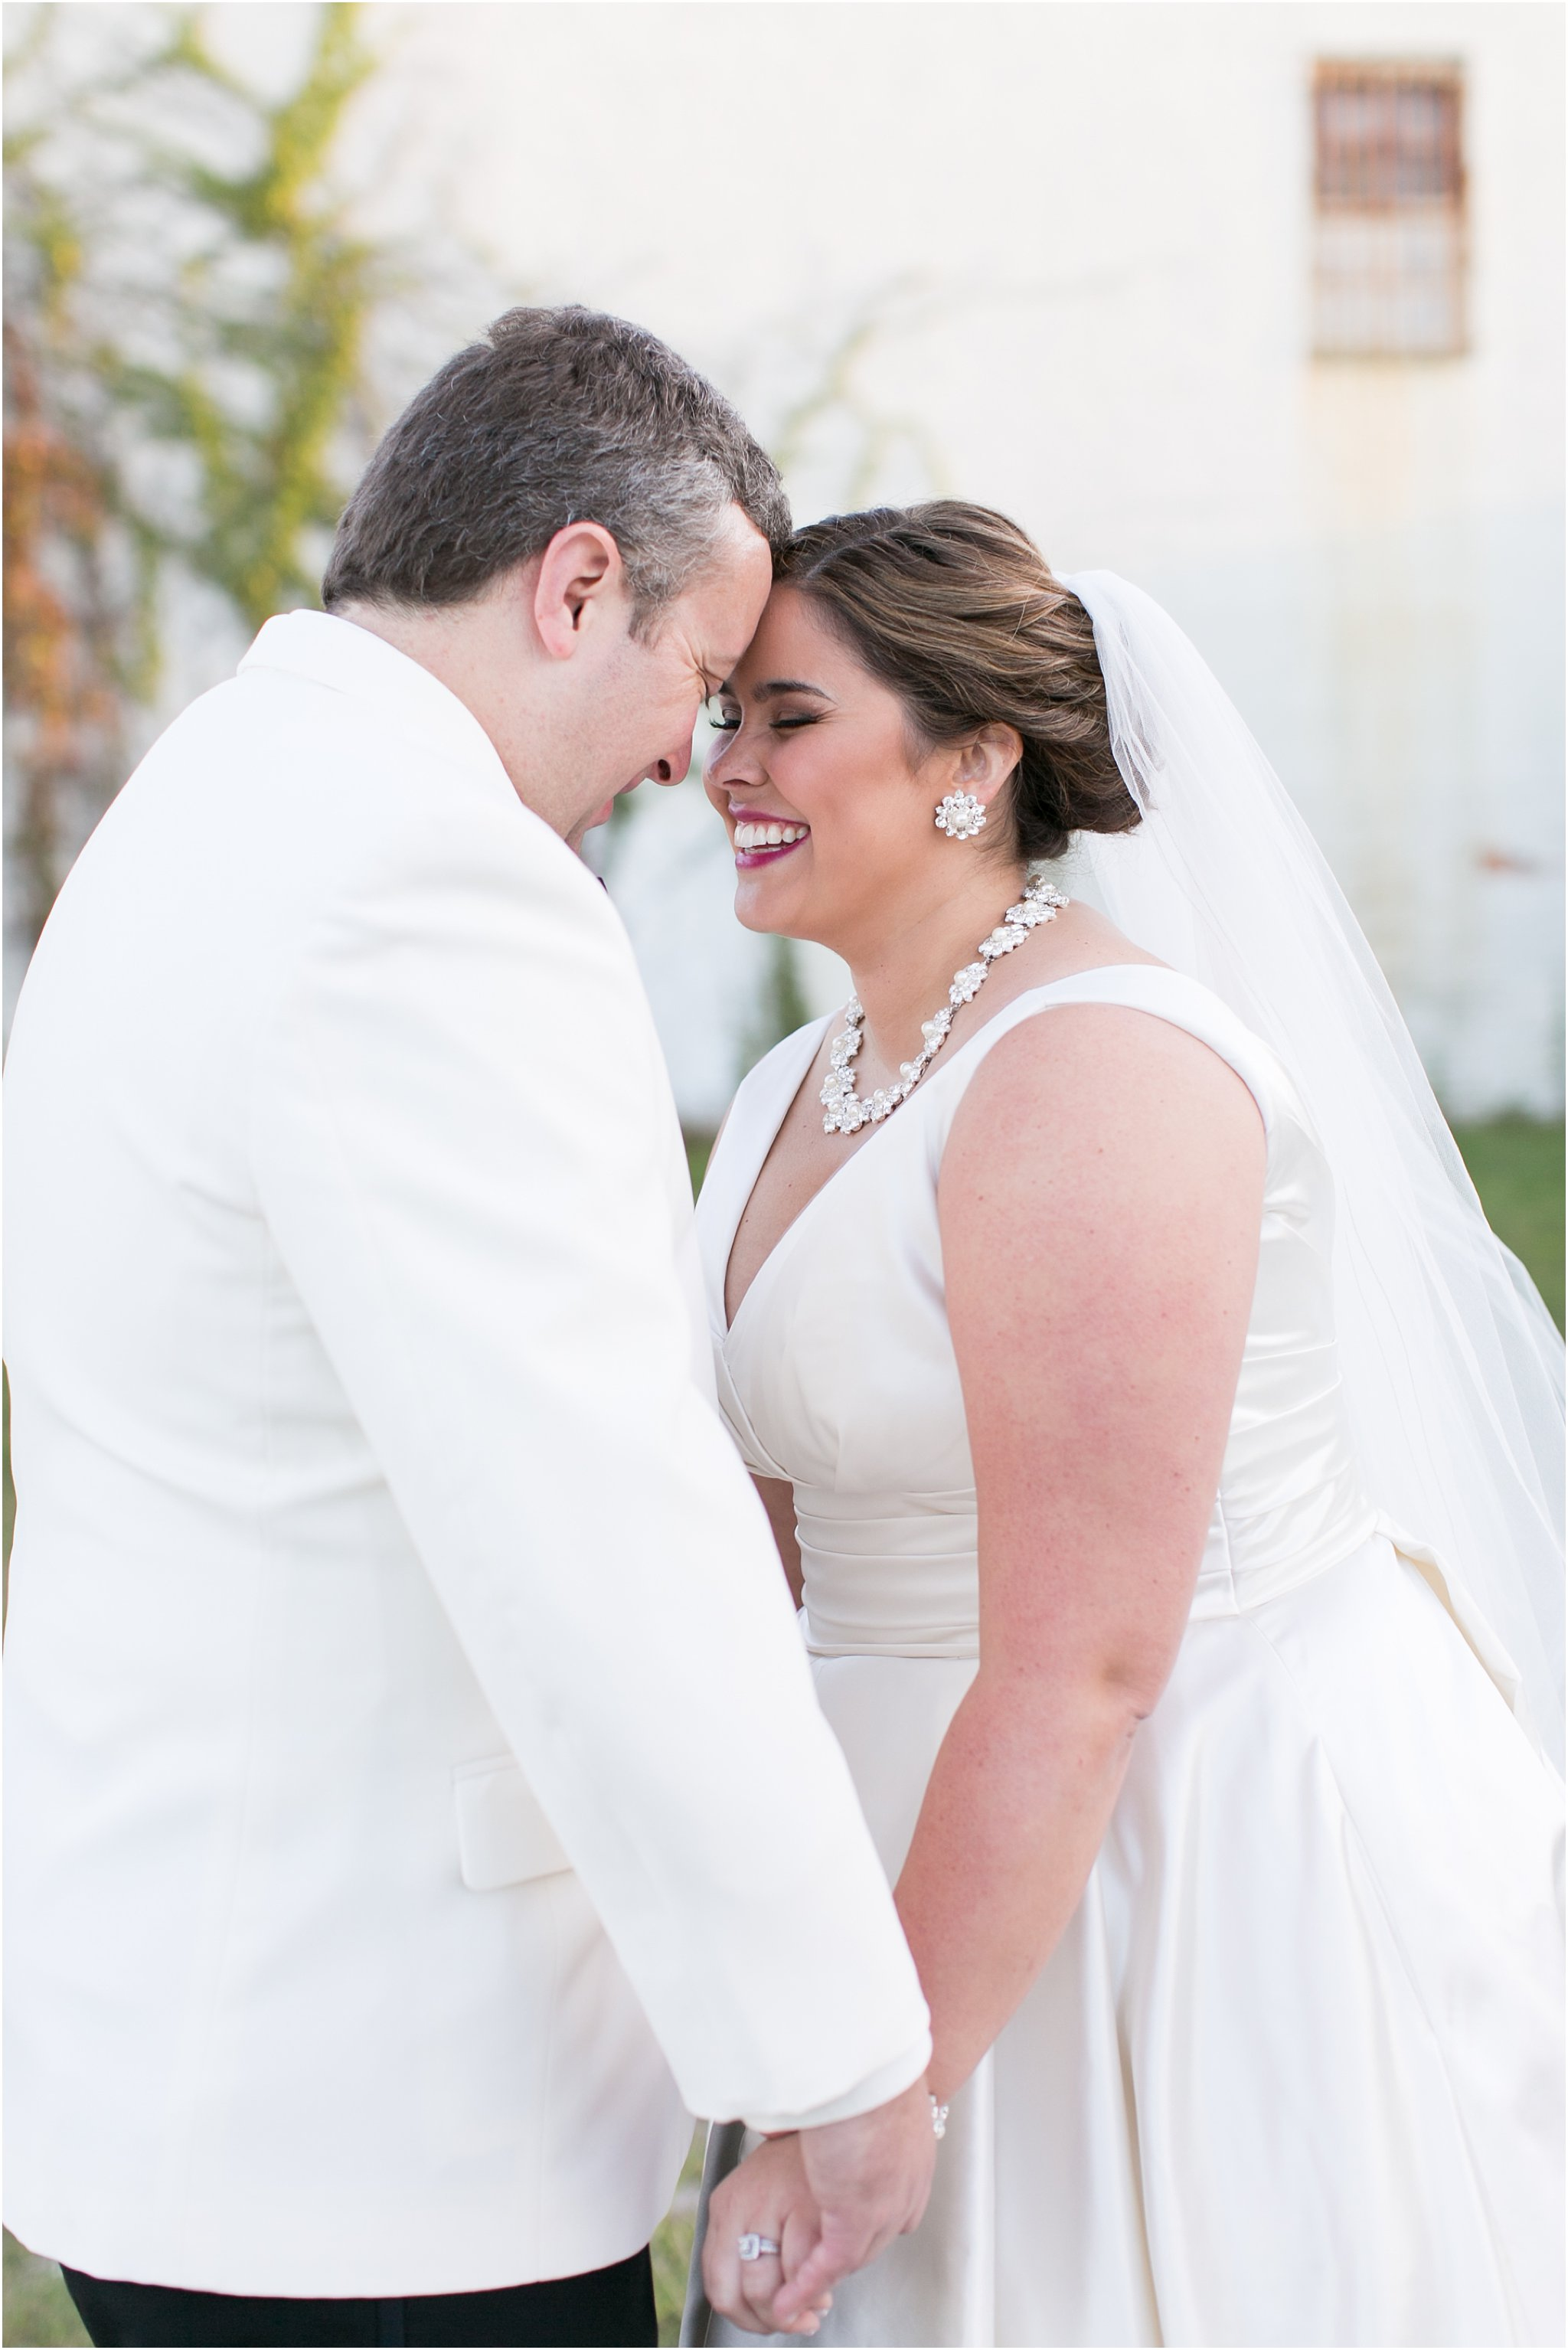 va_jessica_ryan_photography_virginia_wedding_norfolk_harrison_opera_house_norfolk_arts_district_portraits_3813